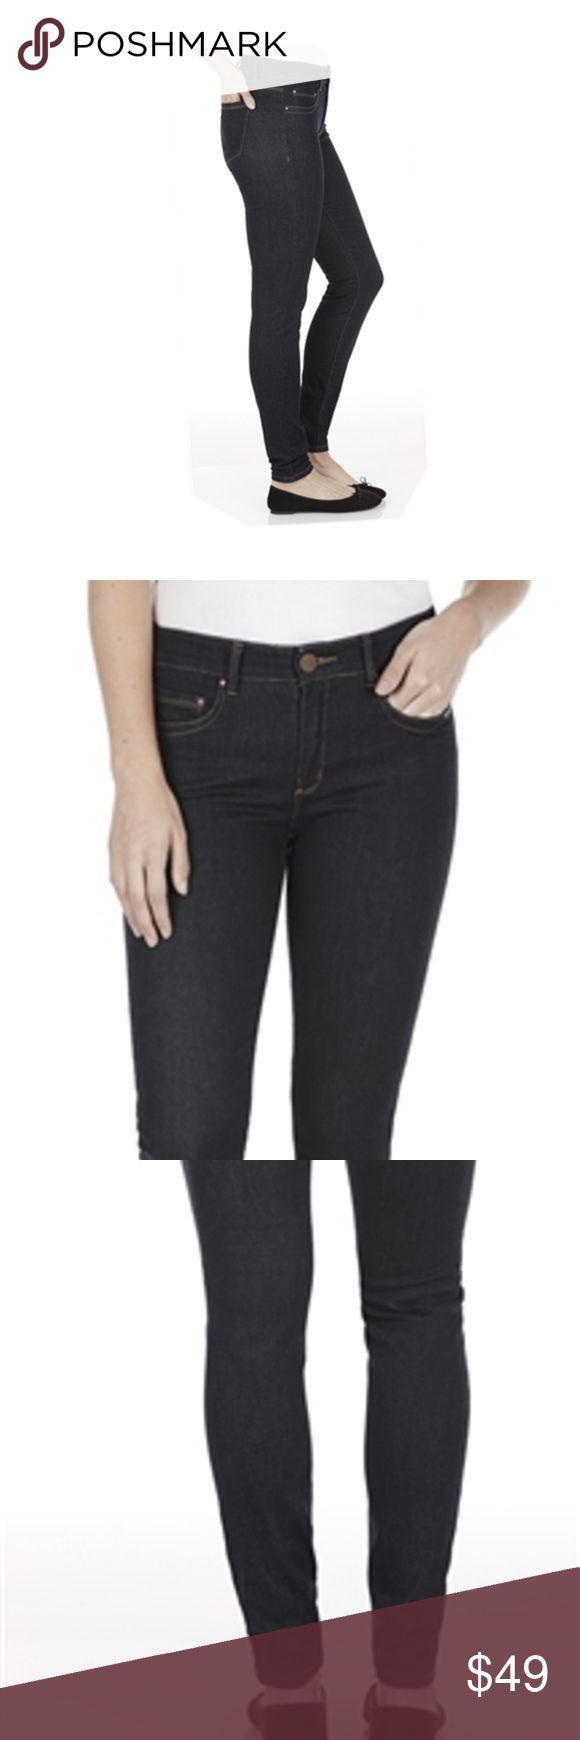 """FDJ Christina slim leg Jeans Lifting Push Up dark new with tags French Dressing Jeans Christina Push Up - lifts behind slim leg size 2 womens color is Ink Blue 90% cotton, 7% polyester, 3% lycra some photos are stock to show fit and style  Actual Measurements laying flat: Waist:  13.5"""" Hips:   rise: 9.5"""" inseam: 30.5 leg opening:  4.5"""" French Dressing Jeans Jeans Skinny"""